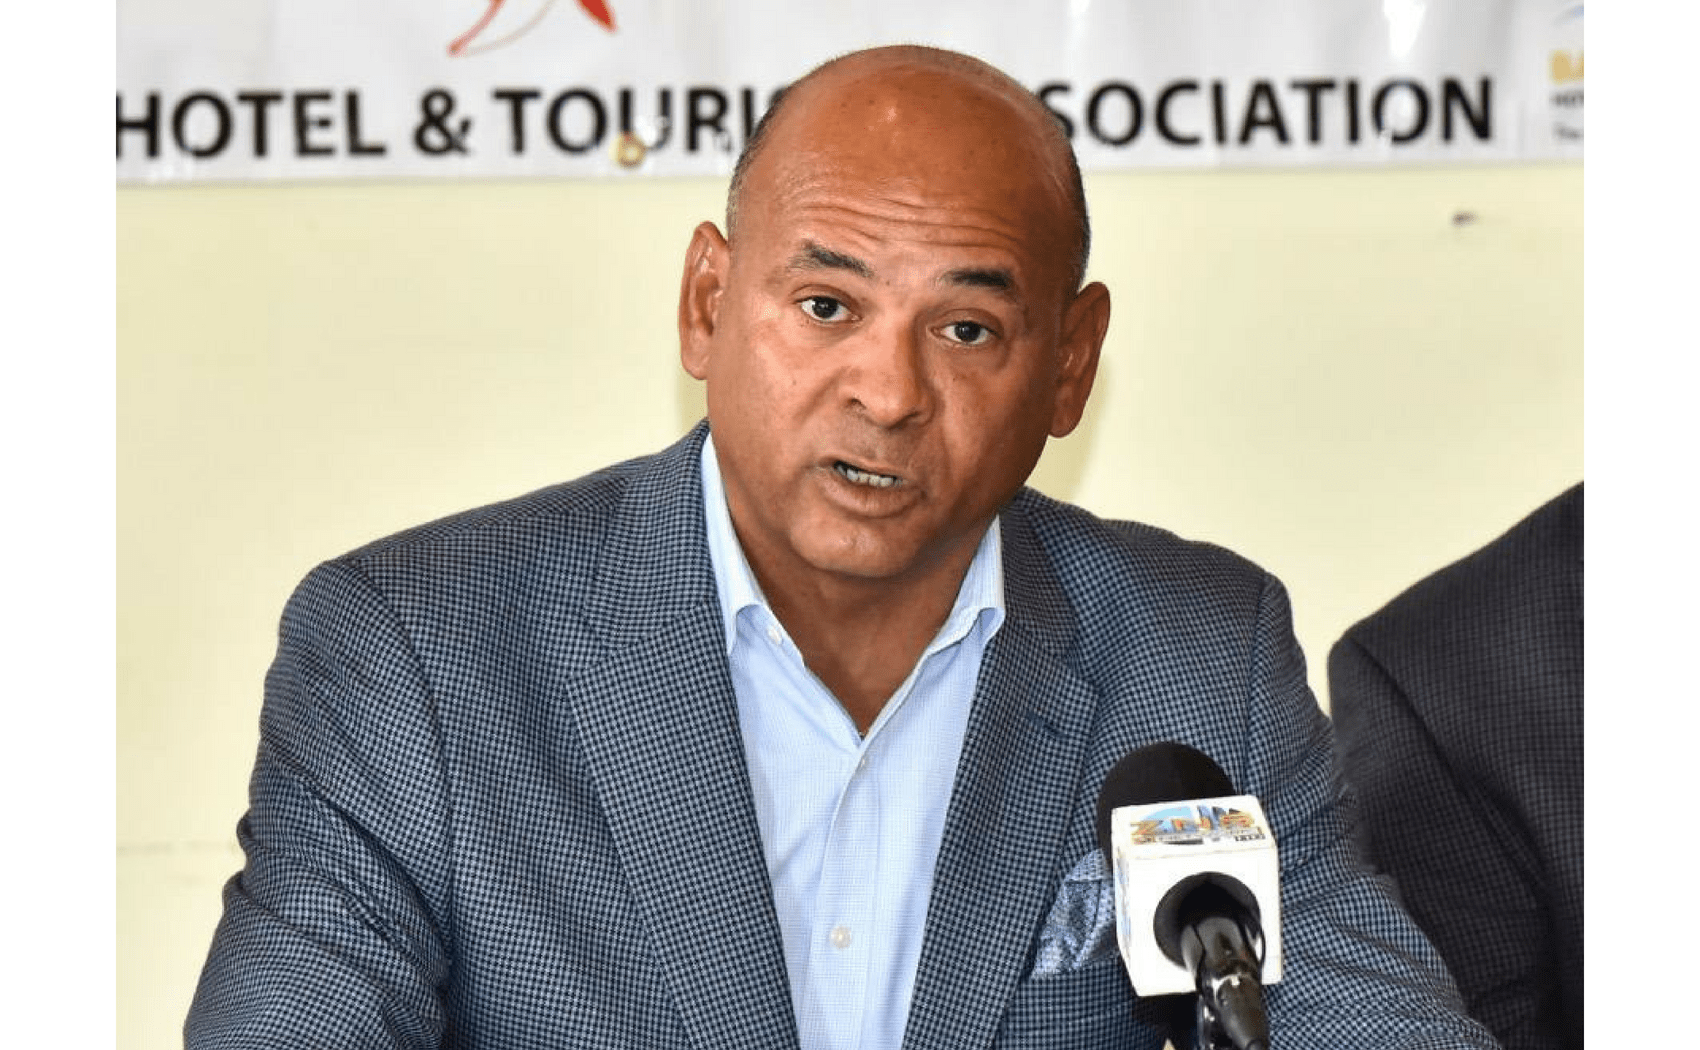 Tourism industry leakage a serious problem